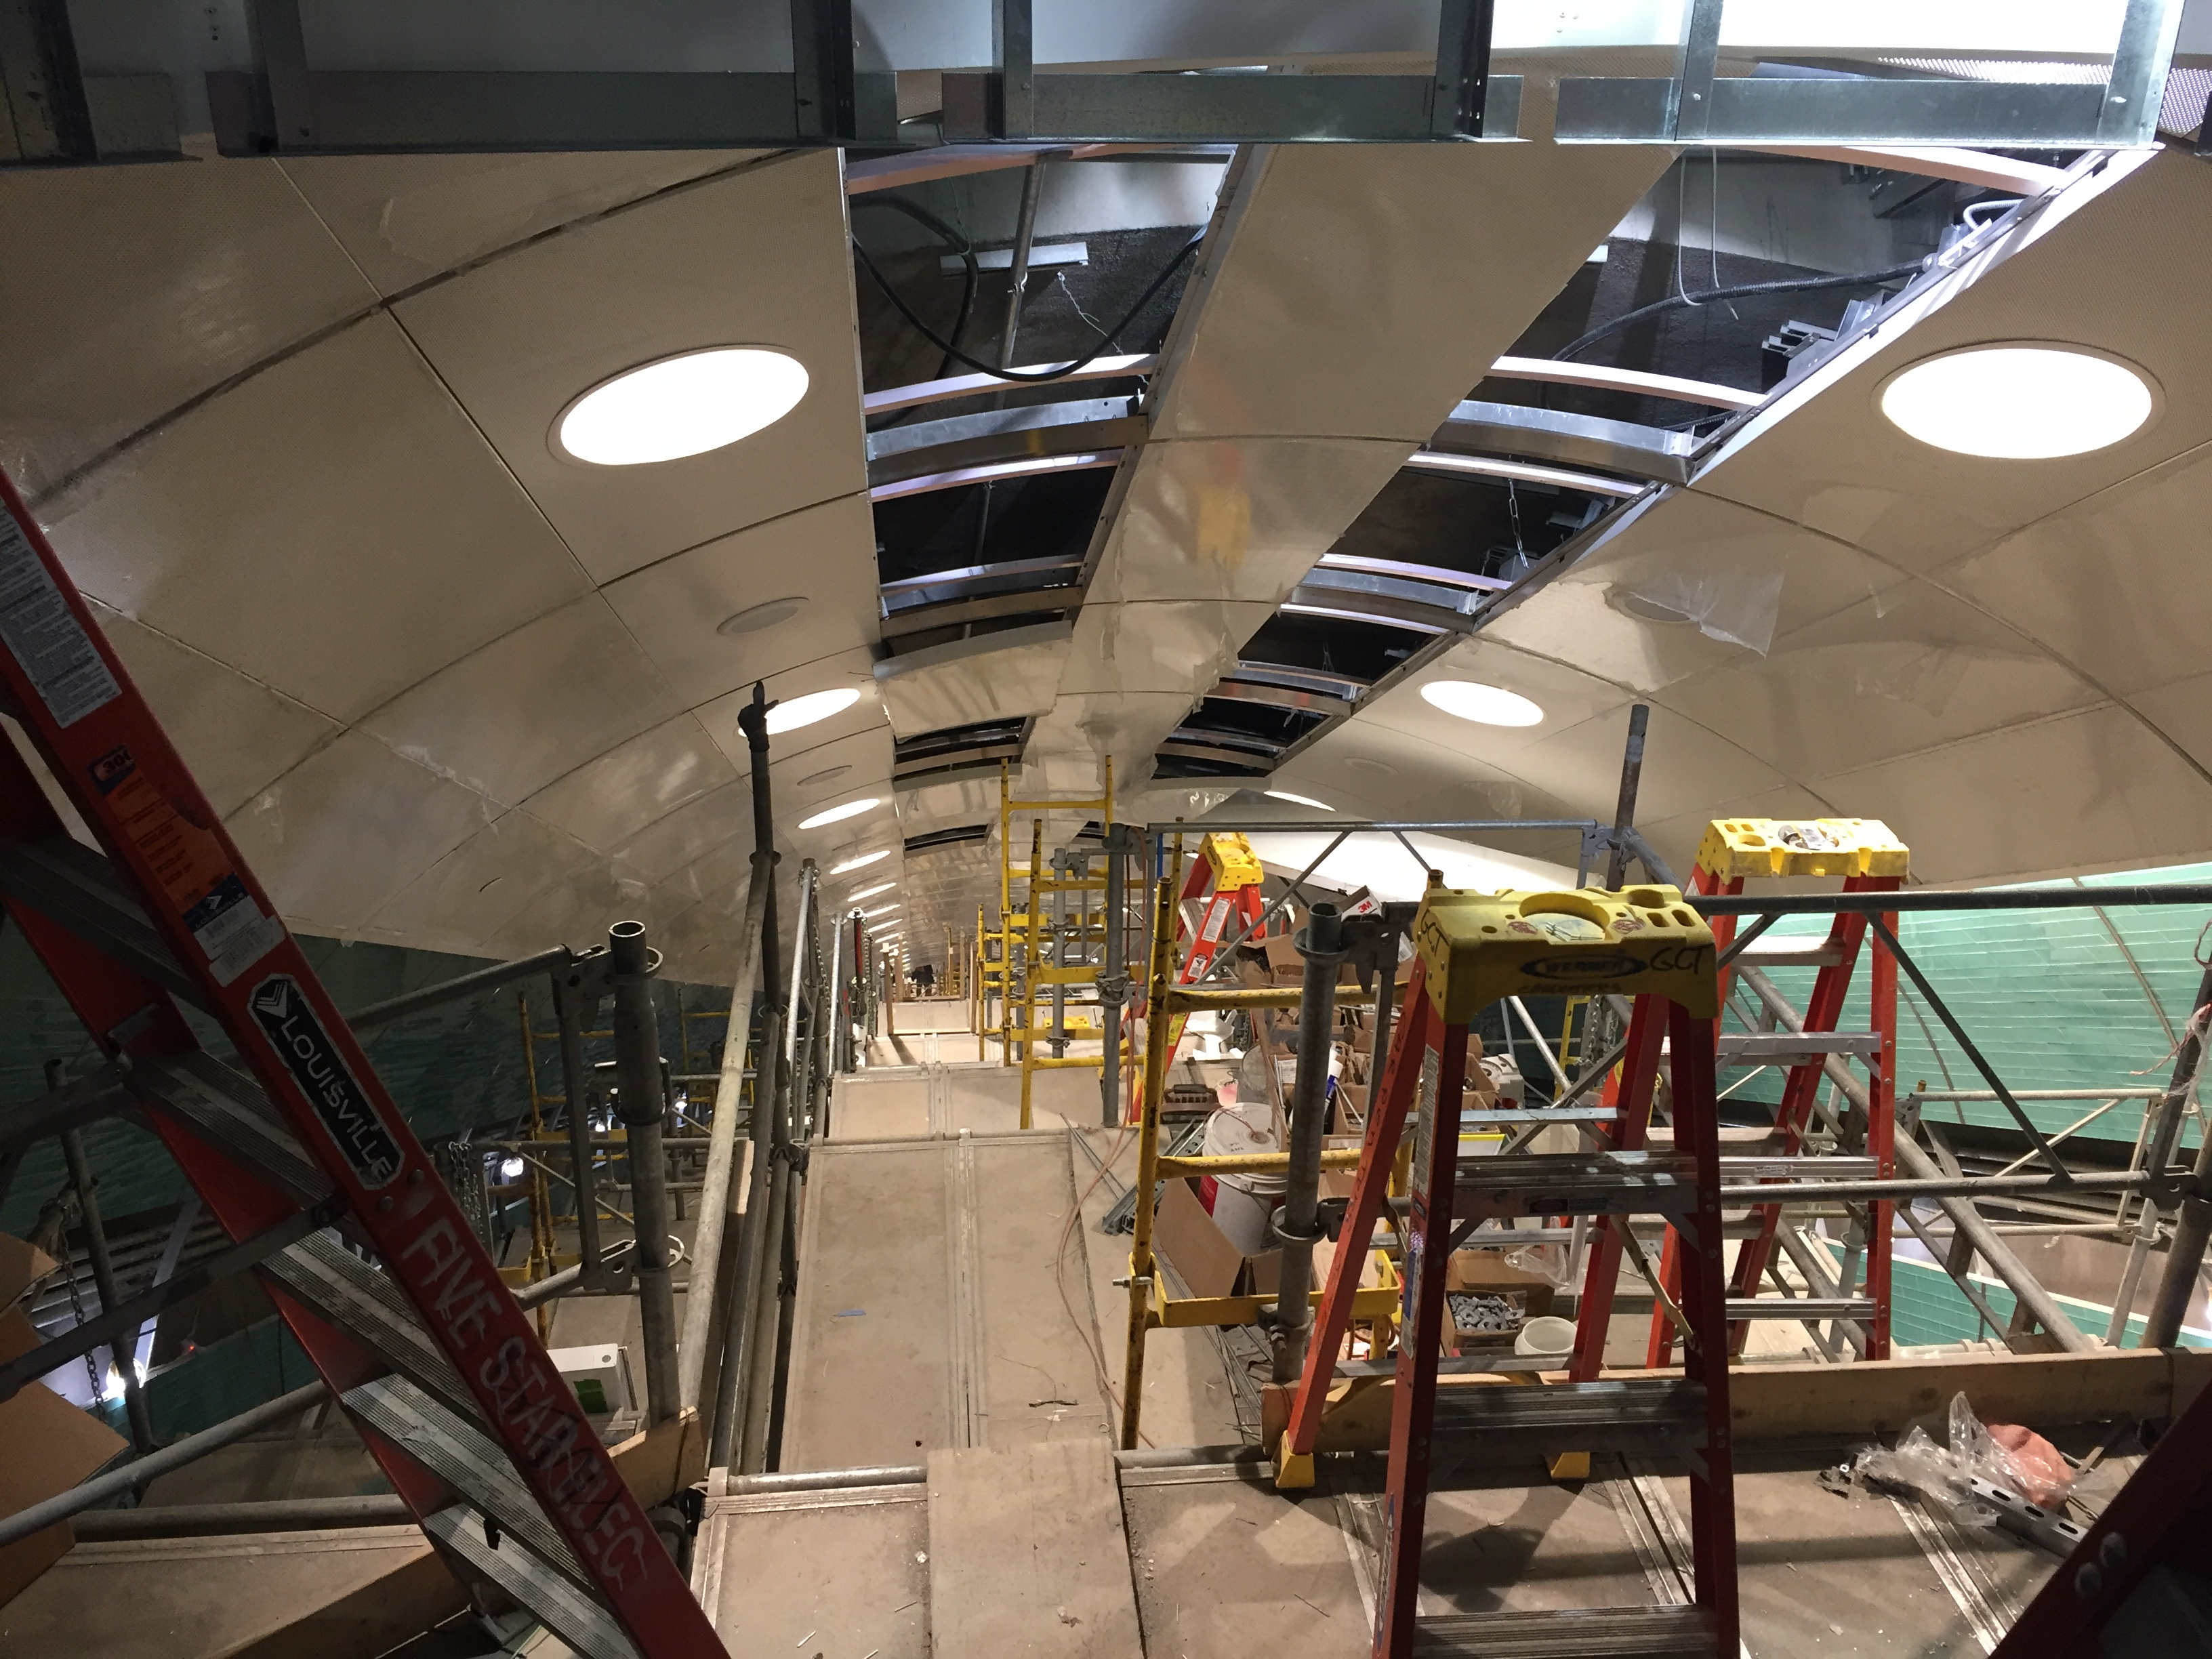 File:Custom Curved Ceiling Panels, Light Fixtures And Speakers At The Top  Of Passenger